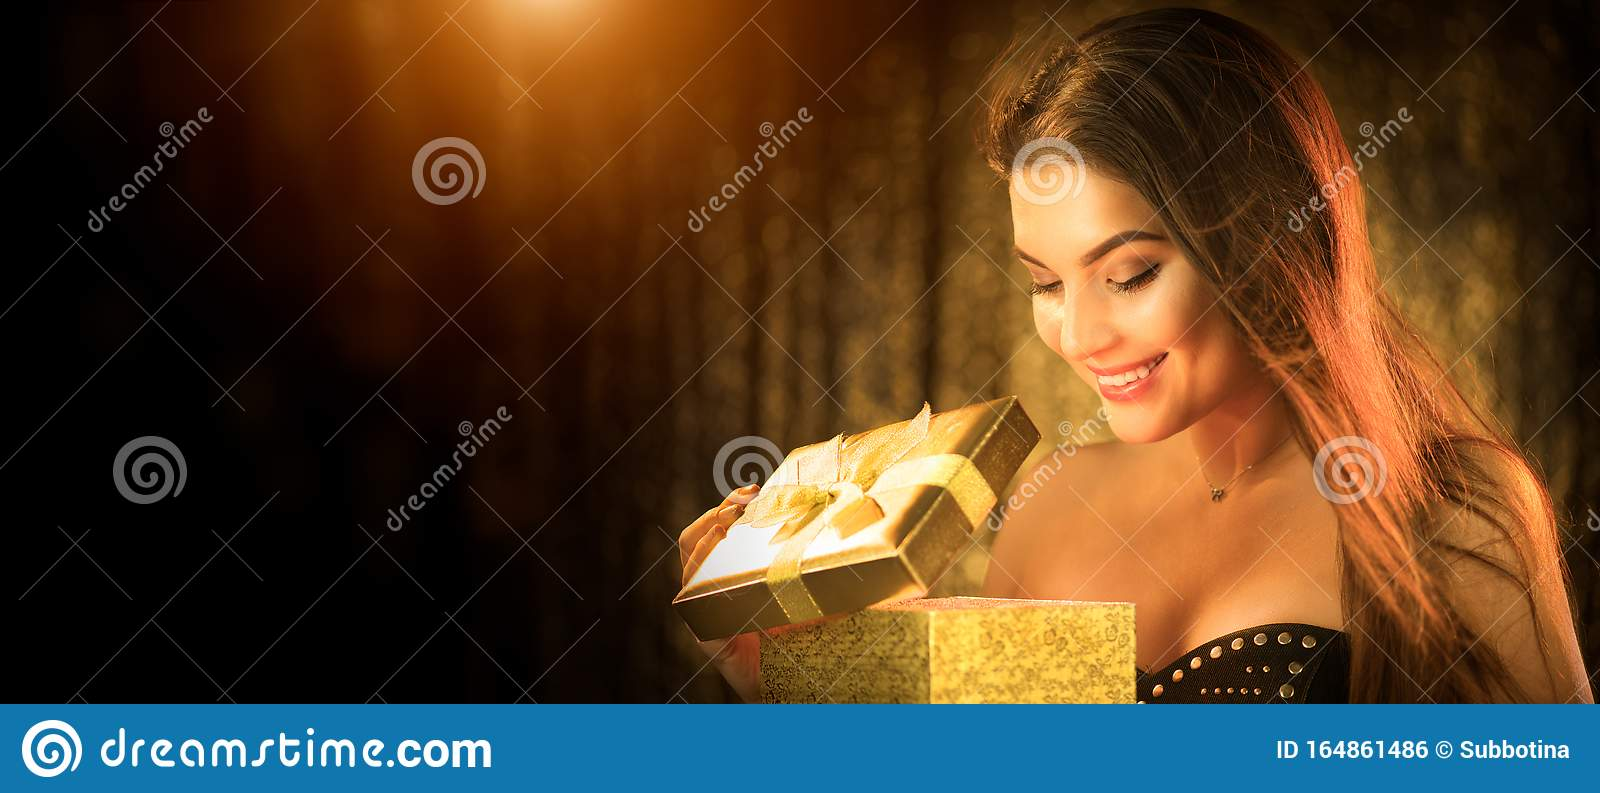 Surprised Christmas Winter Woman opening magic Christmas Gift box and smiling. Fairy tale. Beautiful New Year and Xmas scene